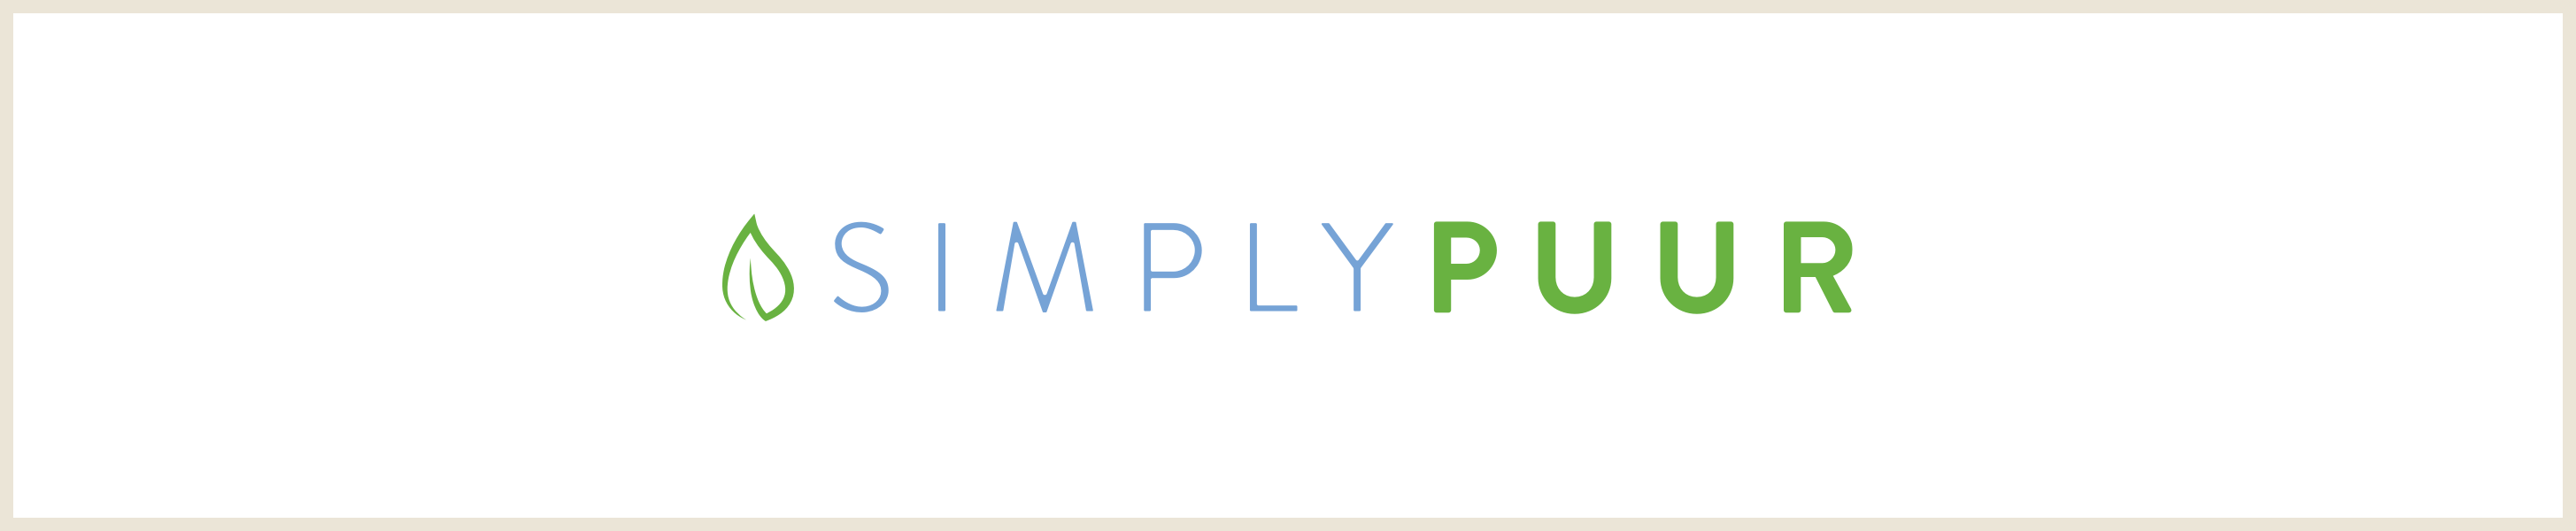 simply-puur@3x